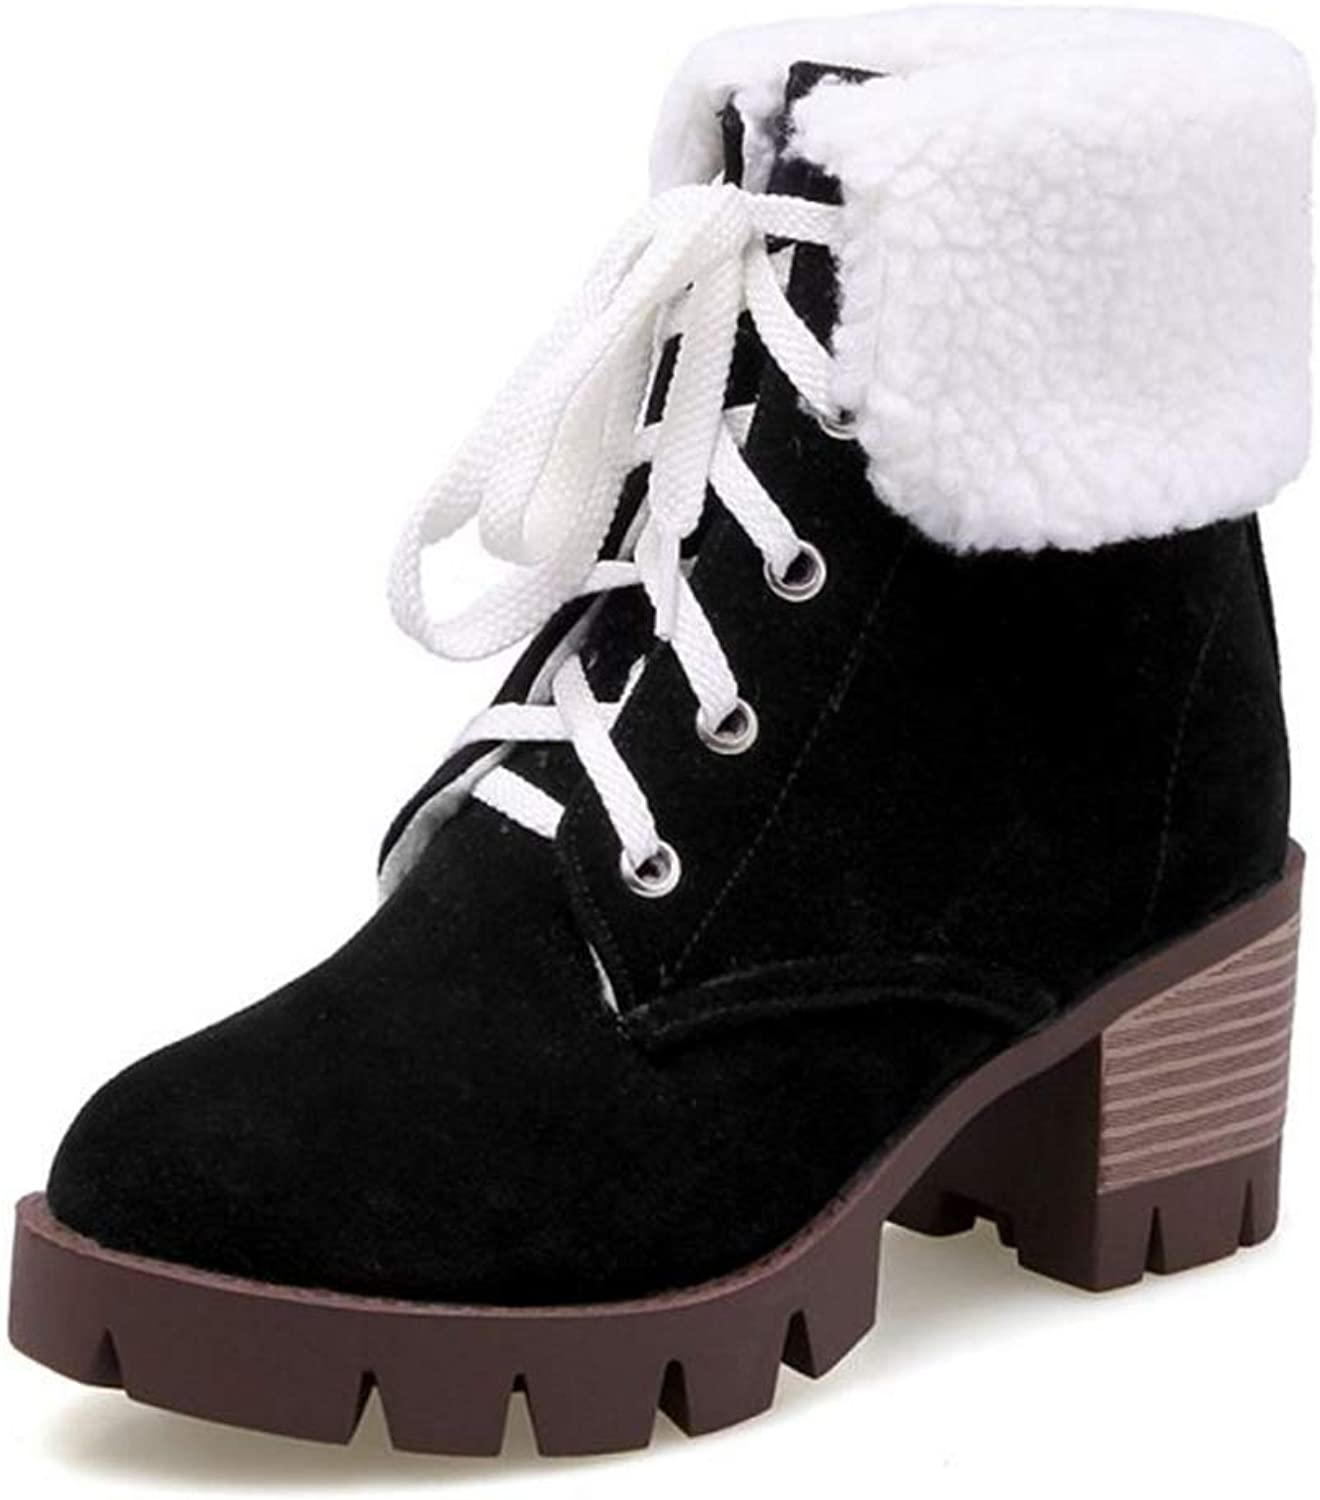 Cocey Women Ankle Martin Lace-up Boots Black